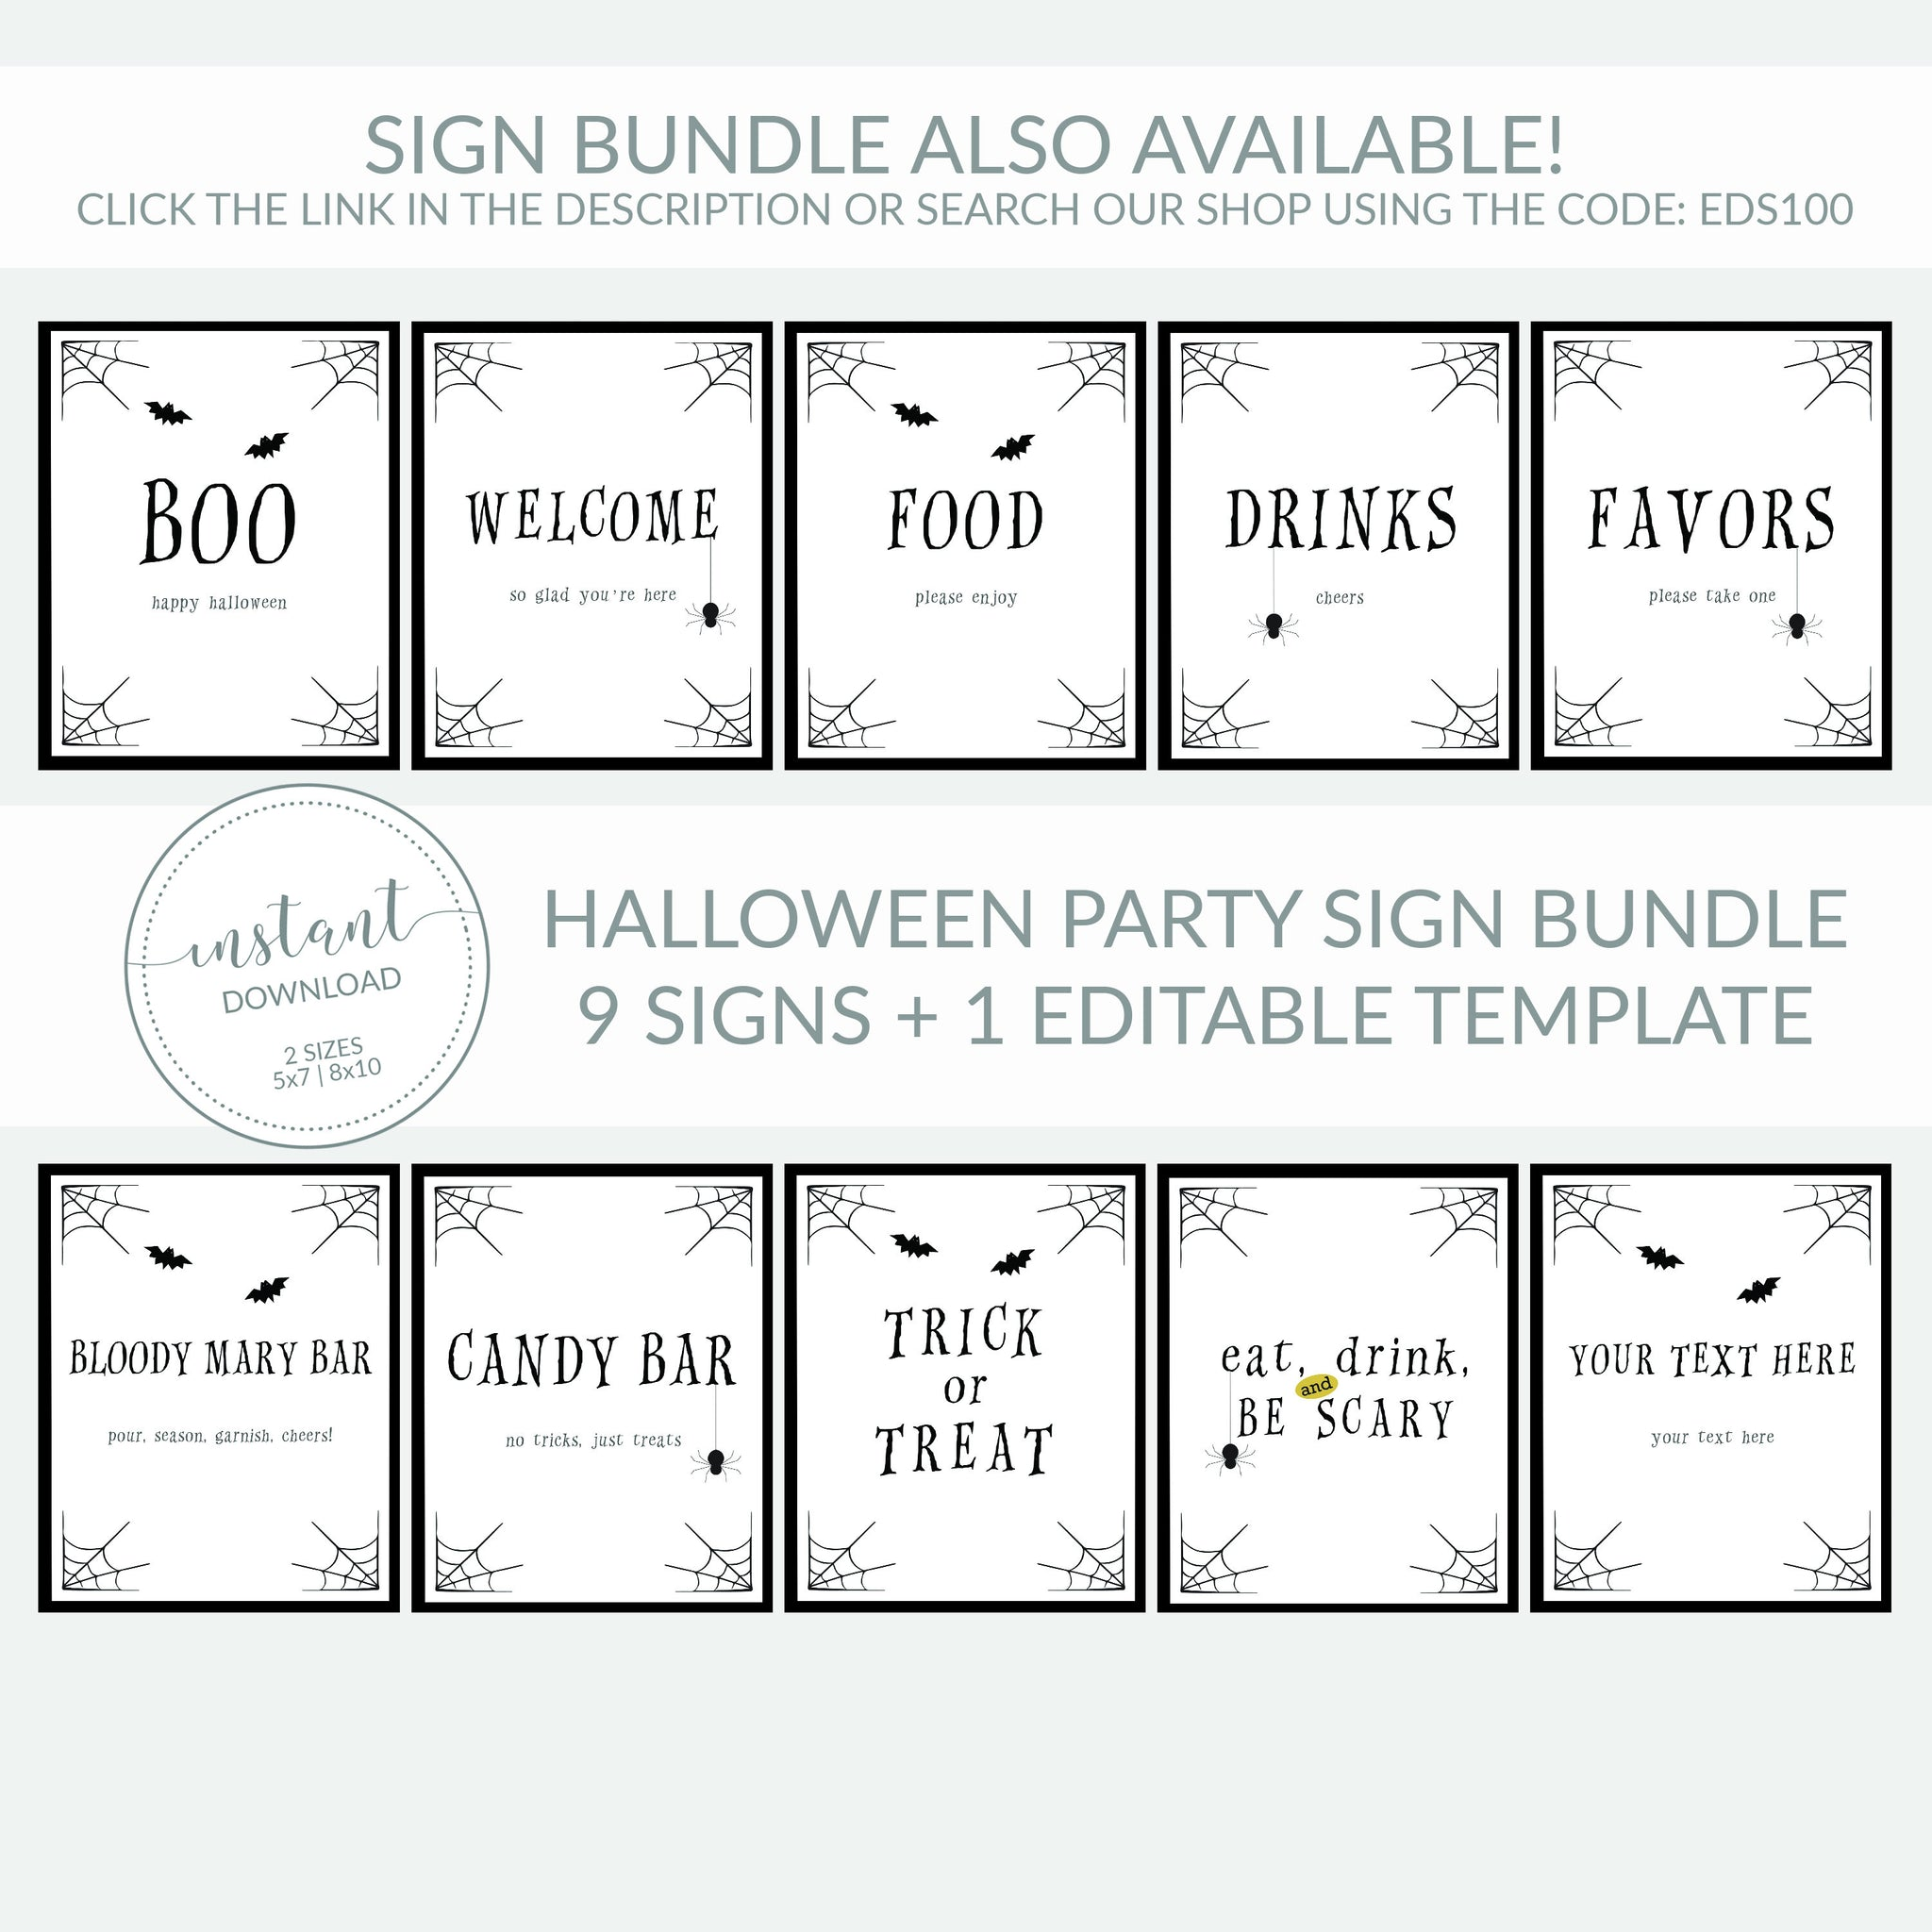 Trunk or Treat Decorations, Trunk Or Treat Ideas, Black and White Halloween, Trunk Or Treat Sign, Truck or Treat, INSTANT DOWNLOAD - EDS100 - @PlumPolkaDot